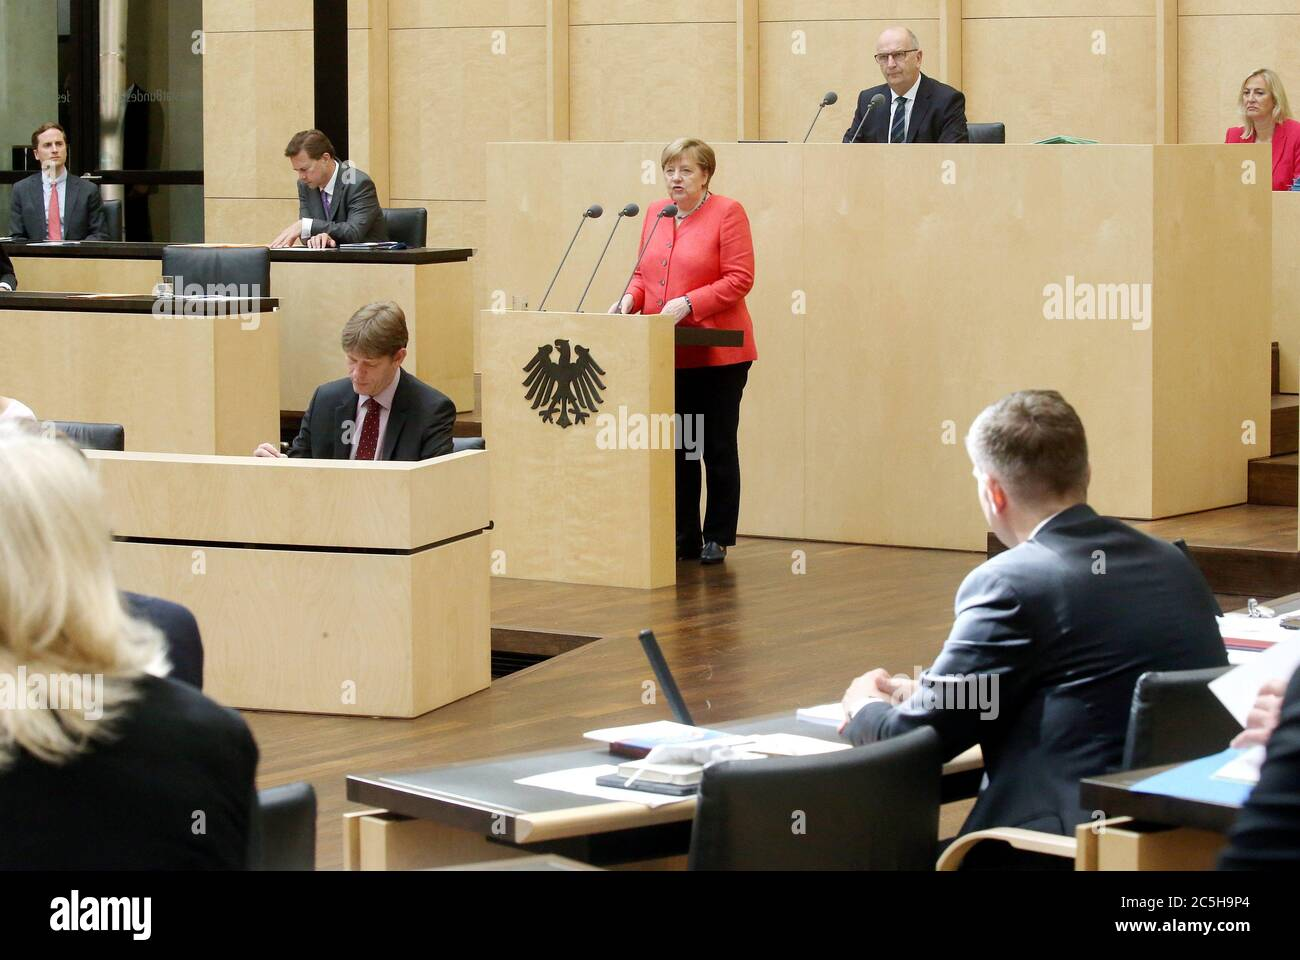 Berlin, Germany. 03rd July, 2020. Chancellor Angela Merkel (CDU, M) gives a speech in the Bundesrat on the objectives of the EU Council Presidency, Dietmar Woidke (SPD, top, 2nd from right), President of the Bundesrat, follows the speech. Credit: Wolfgang Kumm/dpa/Alamy Live News Stock Photo